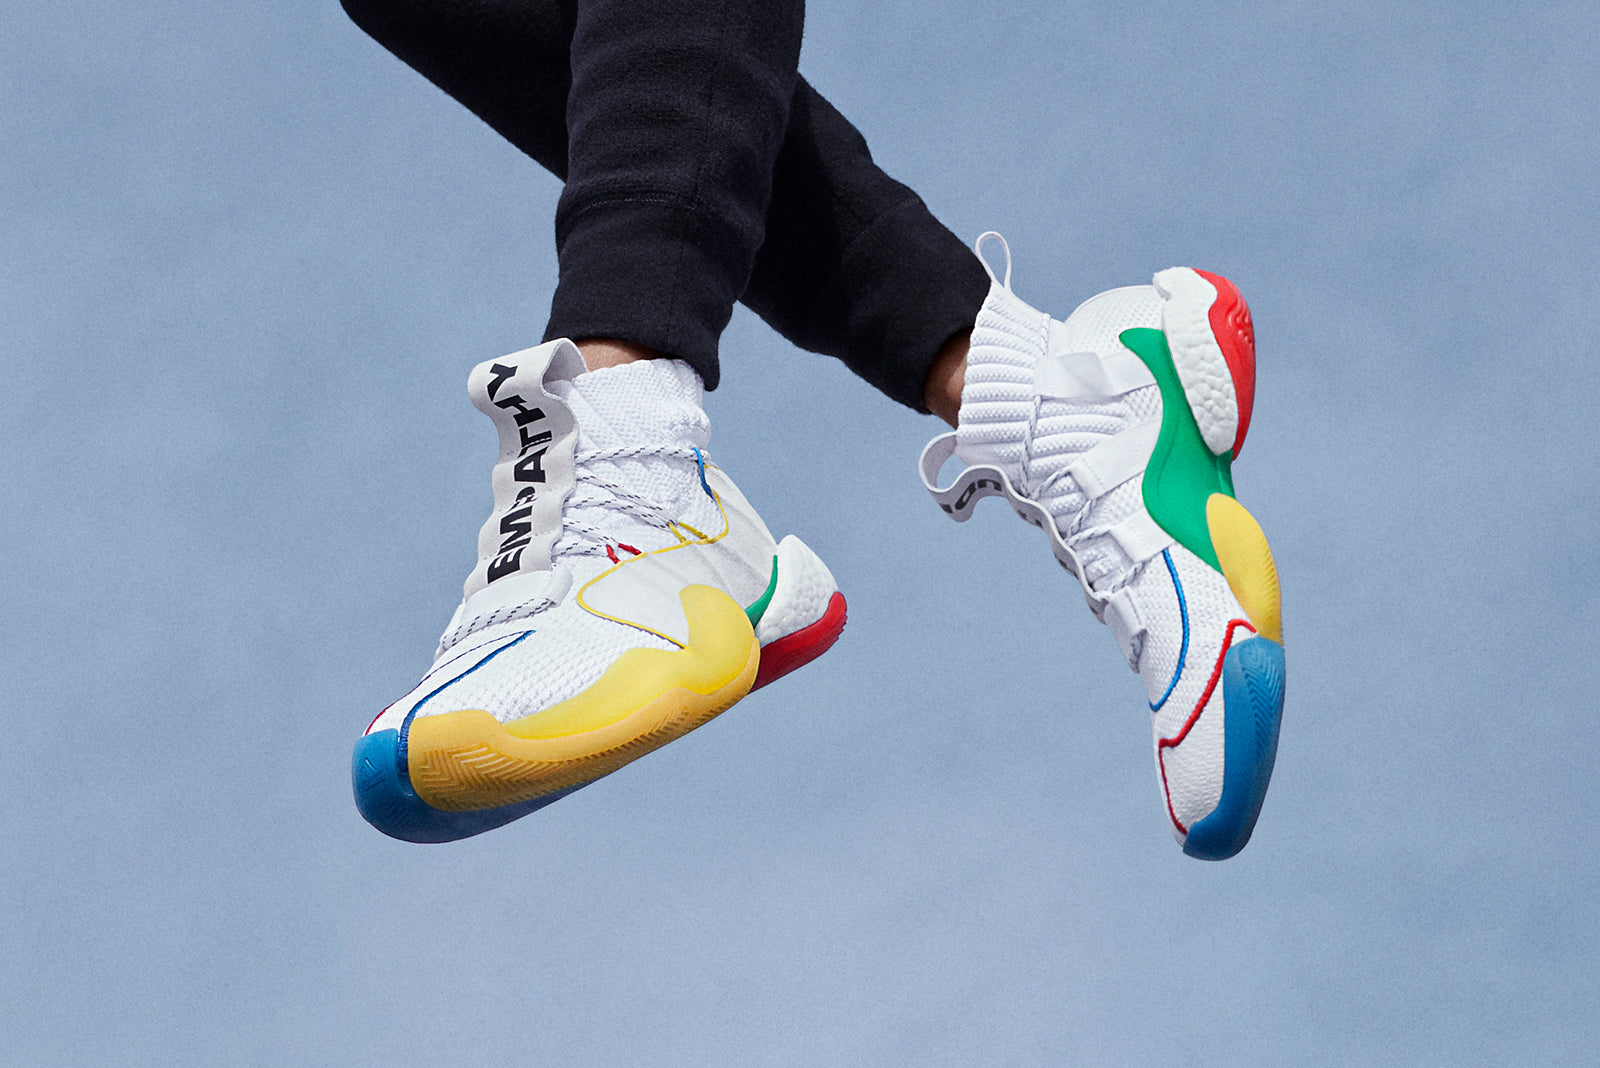 e690ea38e7ed7 adidas Crazy BYW LVL X PW x Pharrell Williams EF3500 Footwear White Multi  Price  £229.00